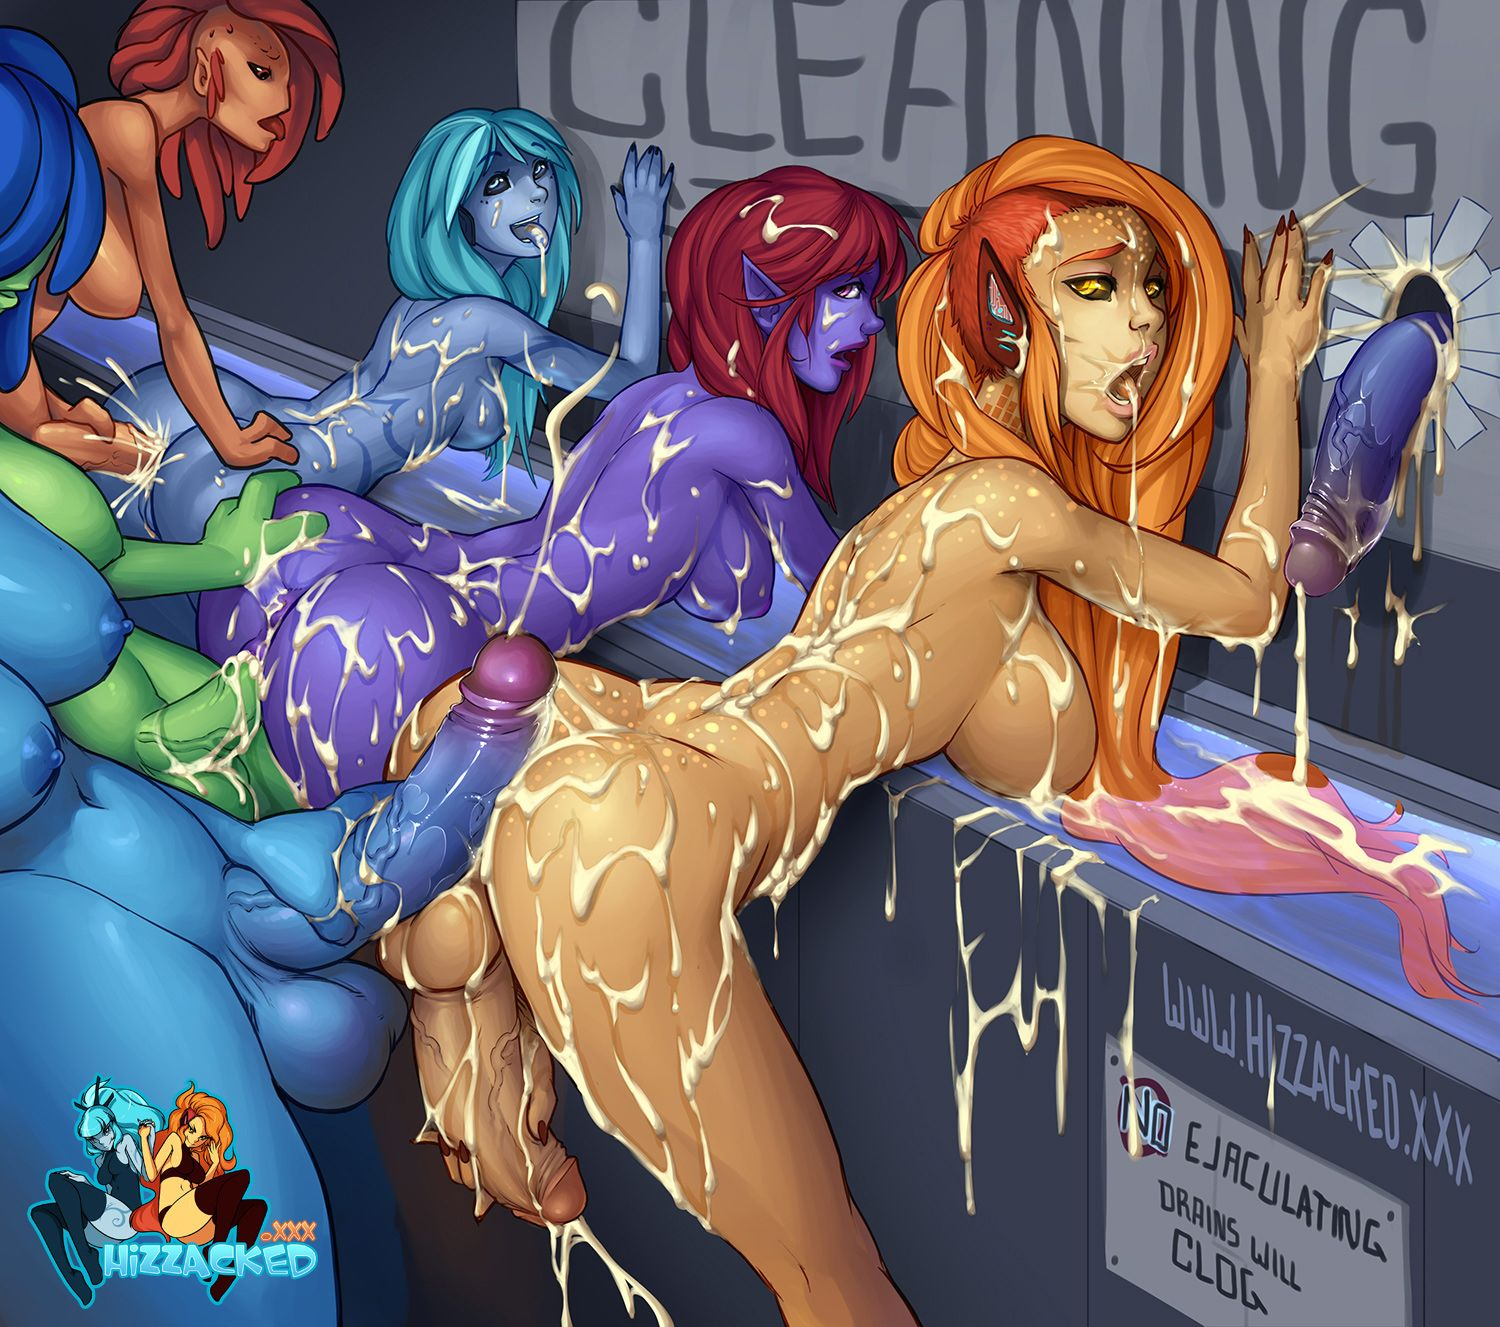 Comic Con Alien Girl Porn - Sci-Fi-Futa-Fuckers-by-Hizzacked.jpg (1500×